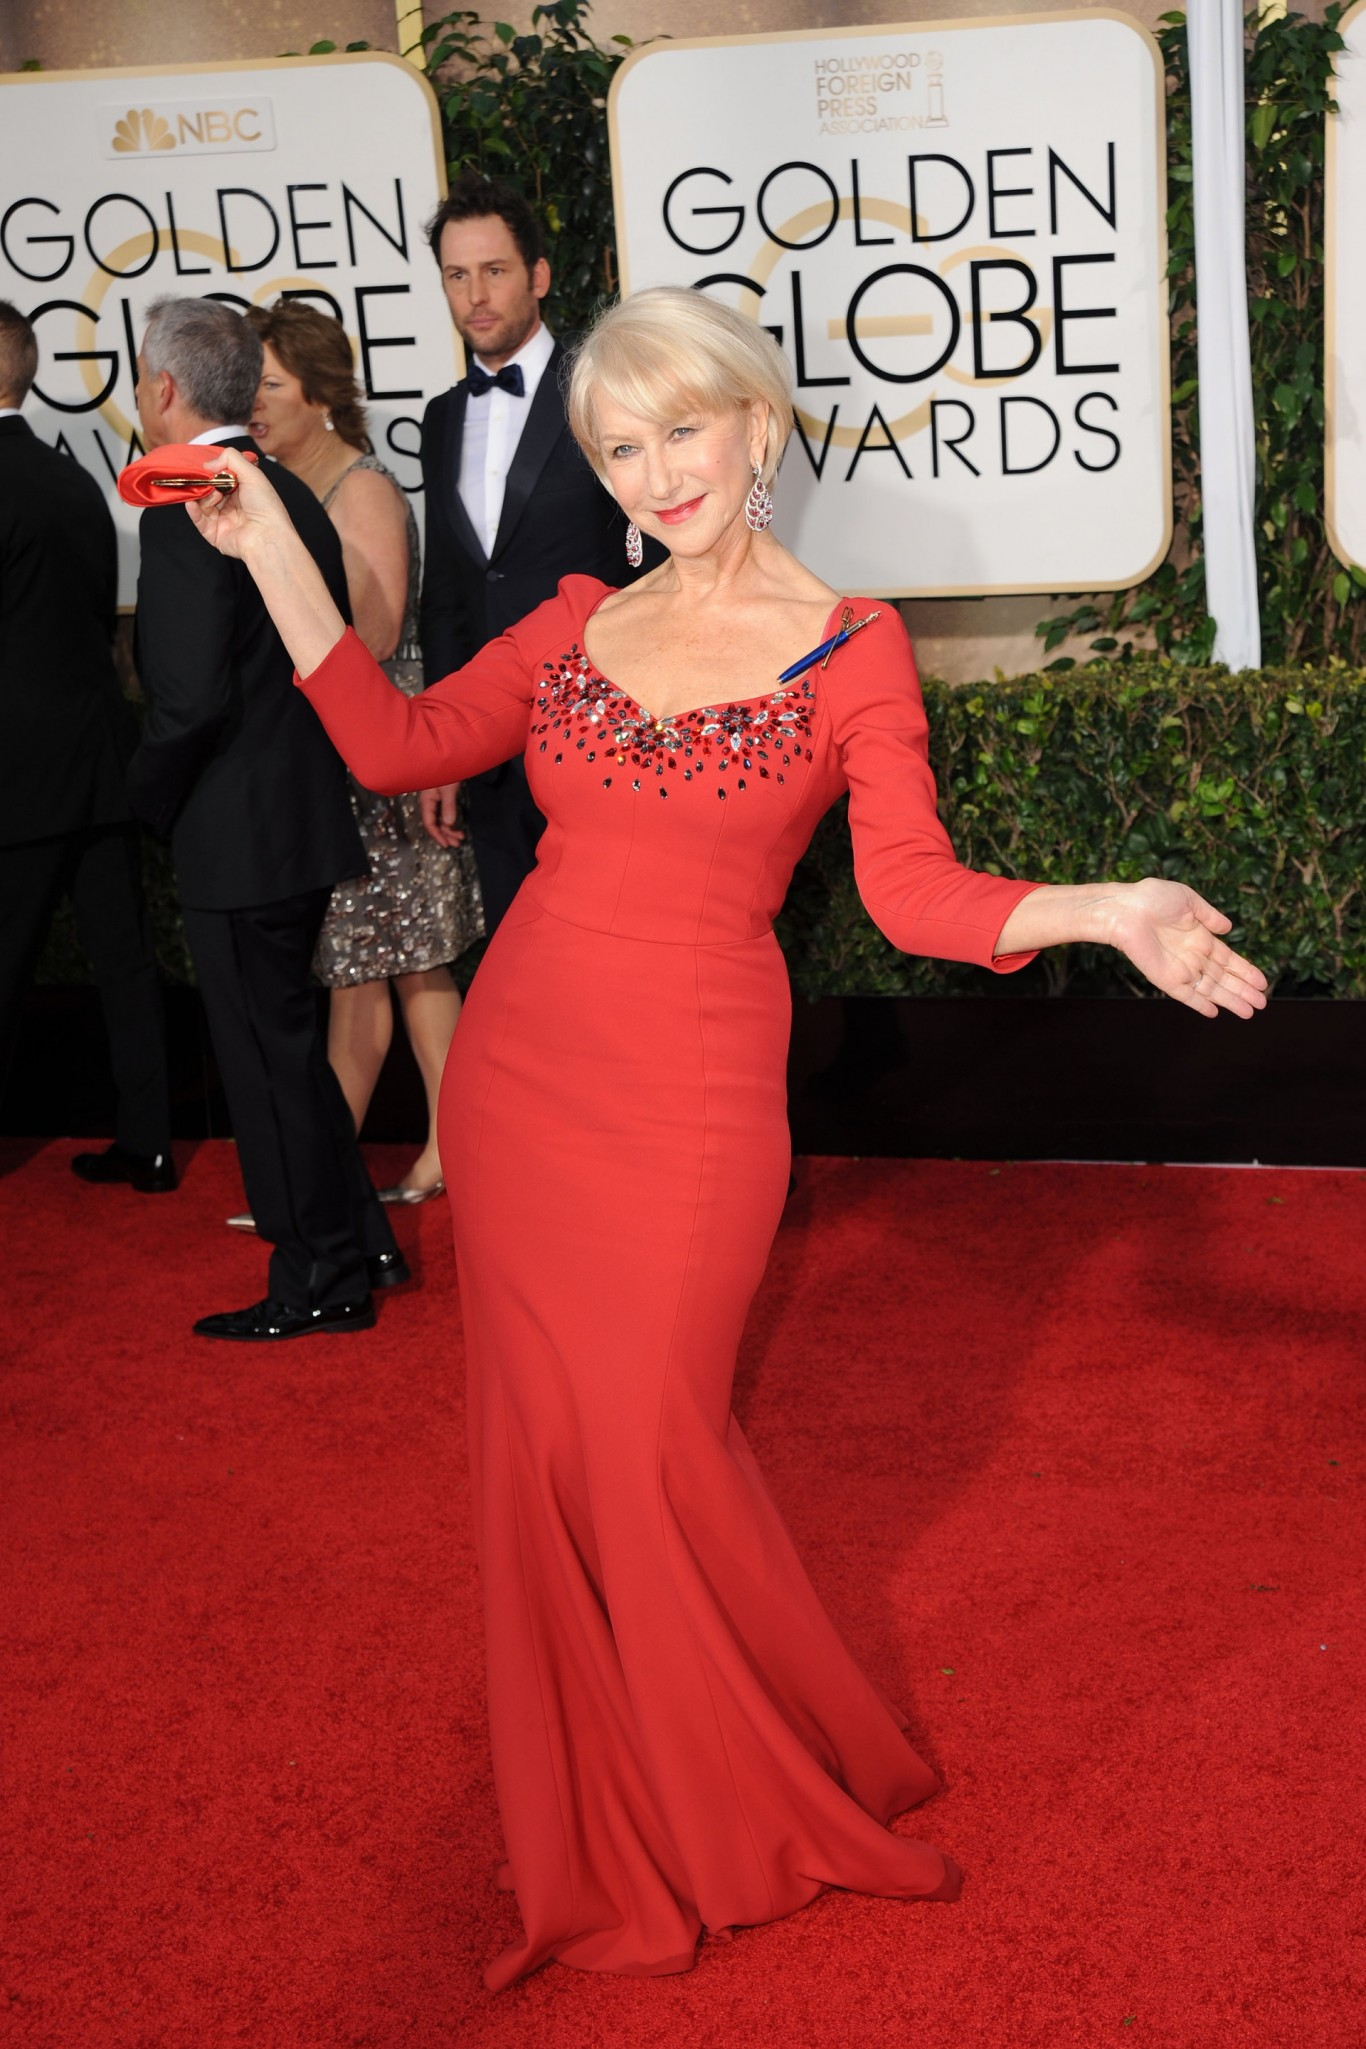 Helen Mirren in a red gown at the 2015 Golden Globe awards